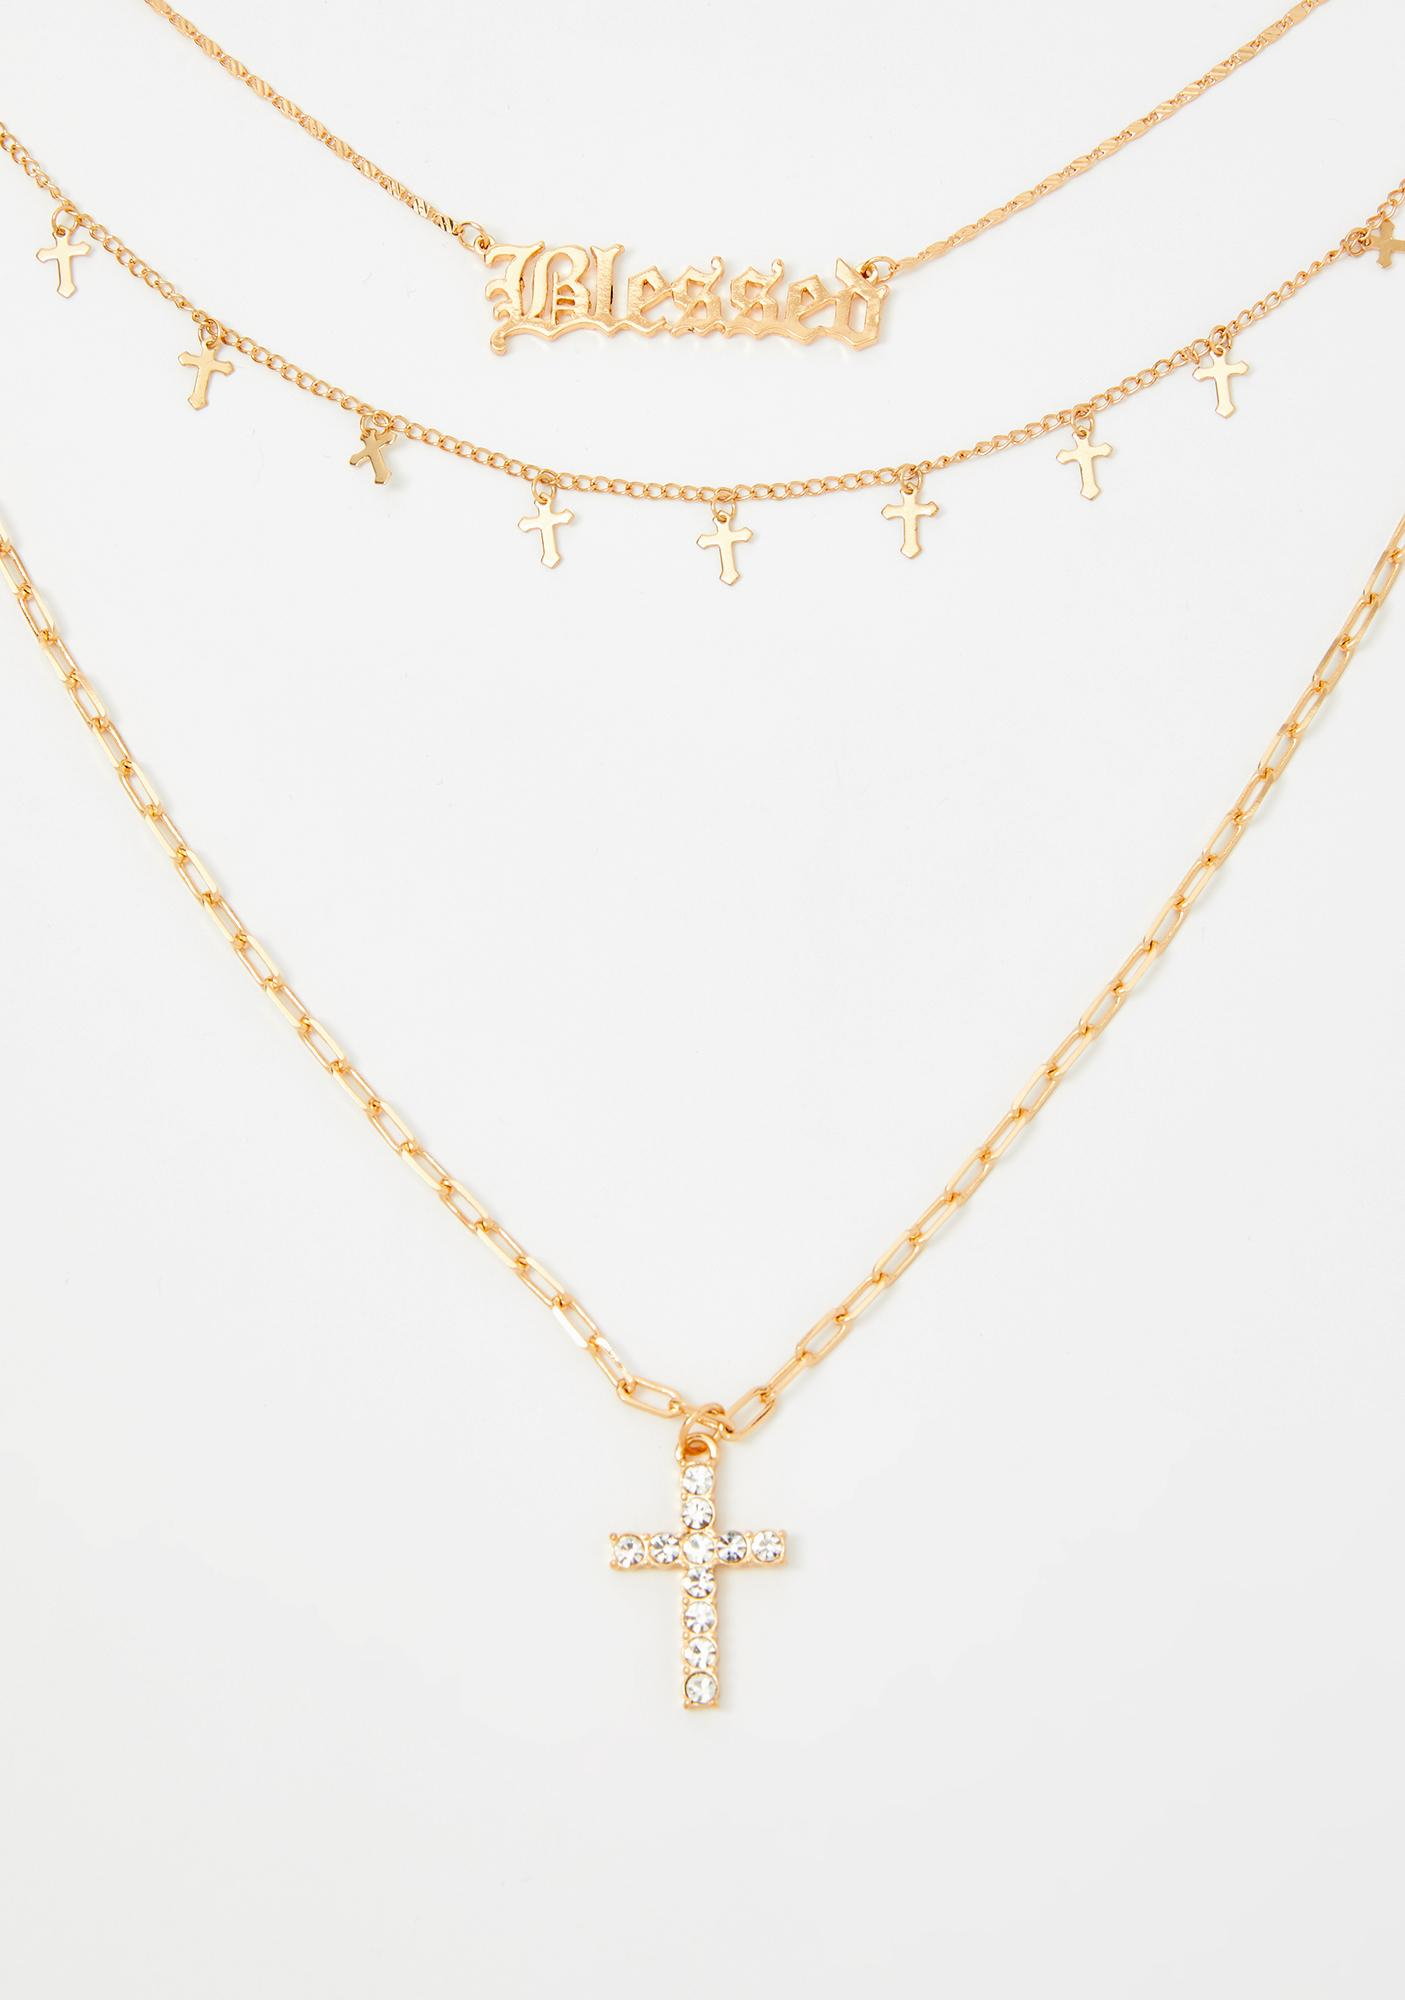 Stay Blessed Layered Necklace